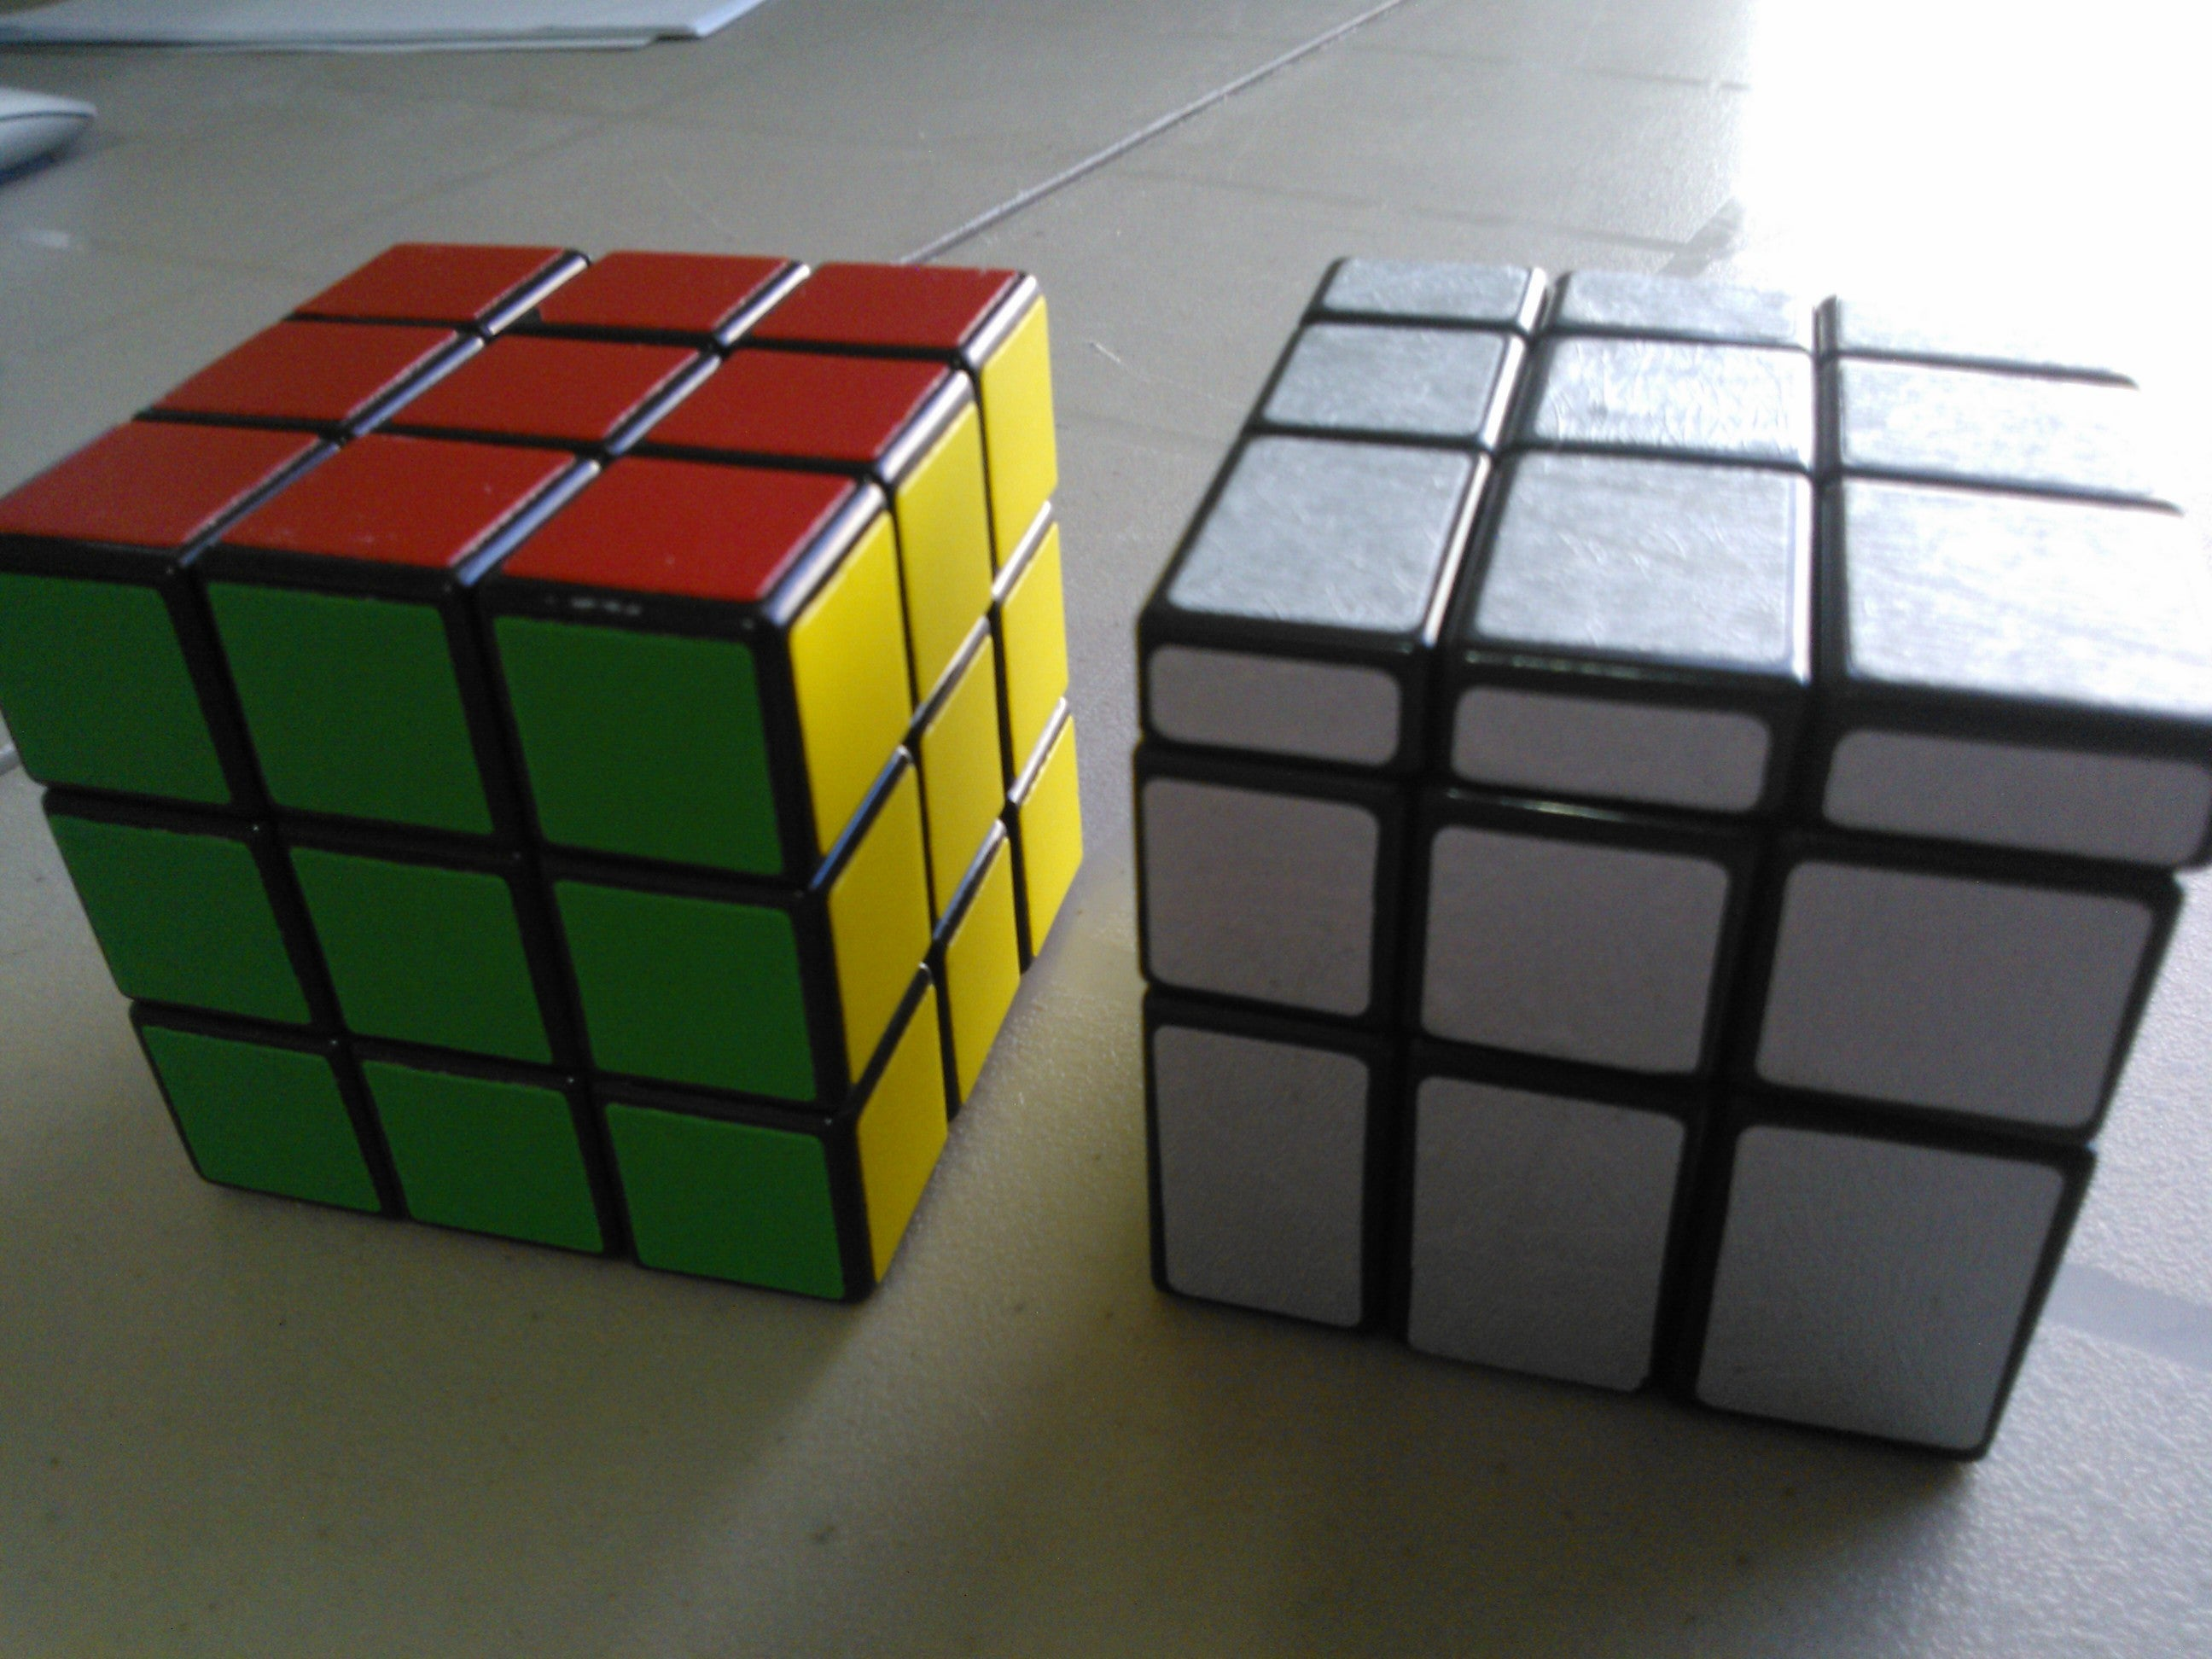 Common patterns in the rubik 39 s mirror cube for Mirror rubik s cube